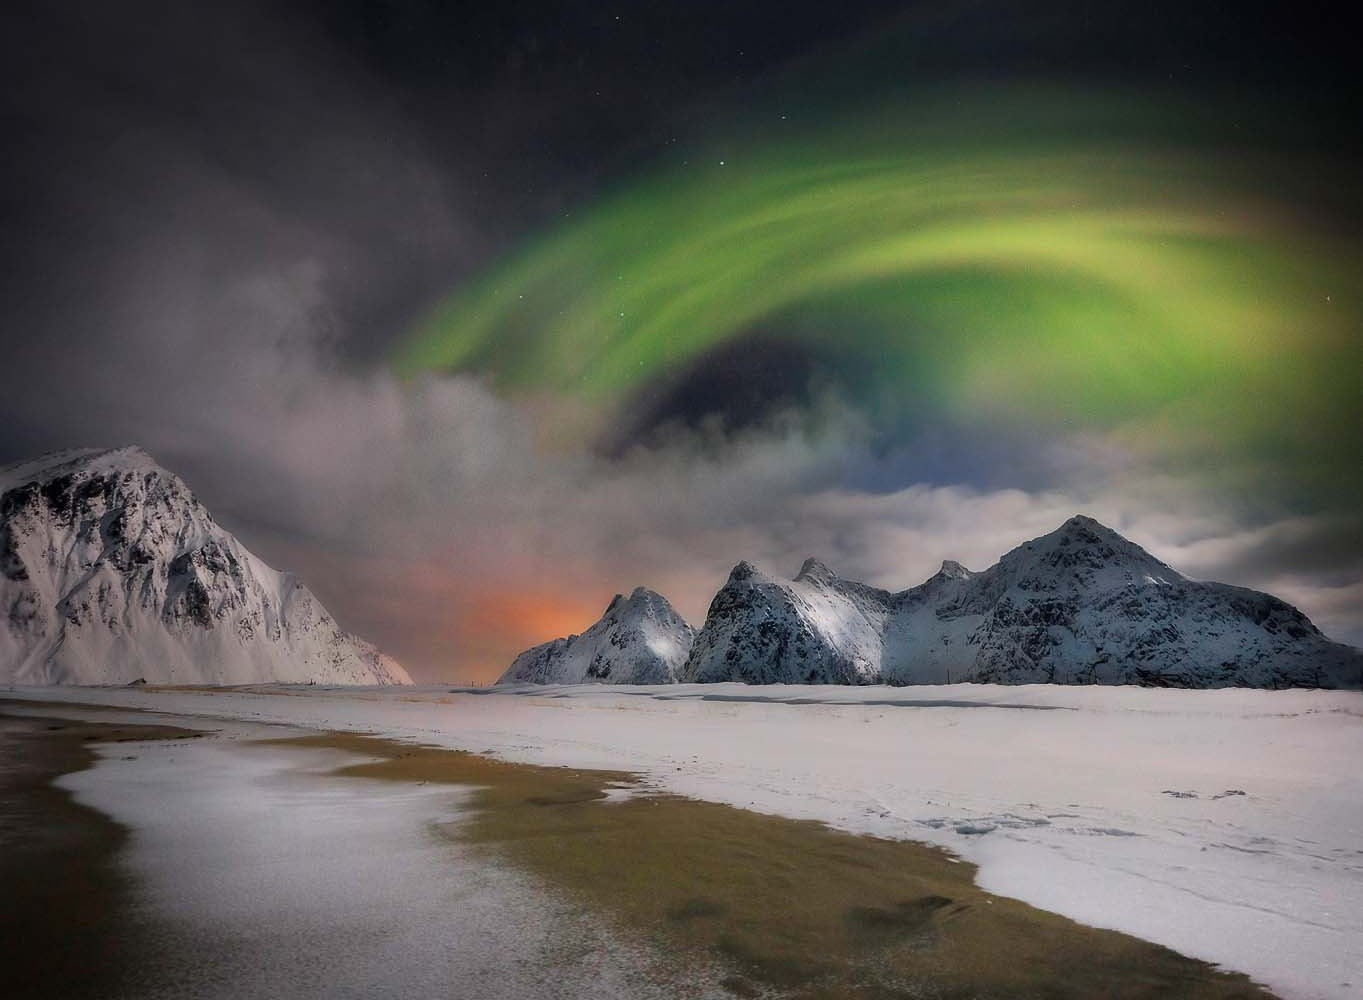 Chasing The Northern Lights On Lofoten Islands